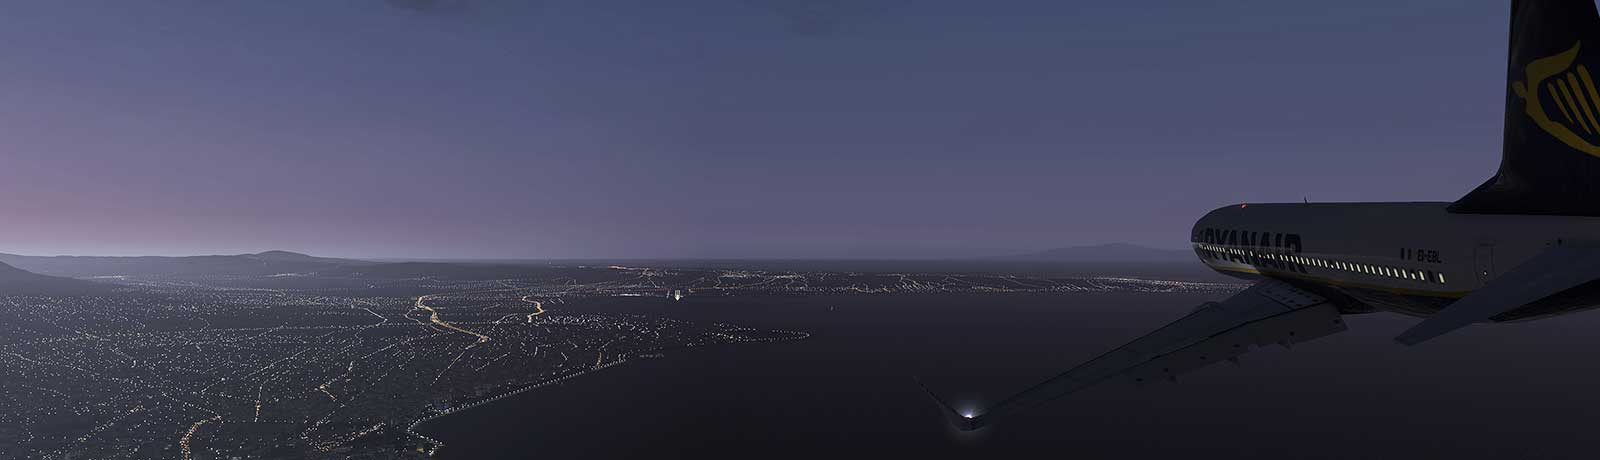 FlyTampa - Thessaloniki XP